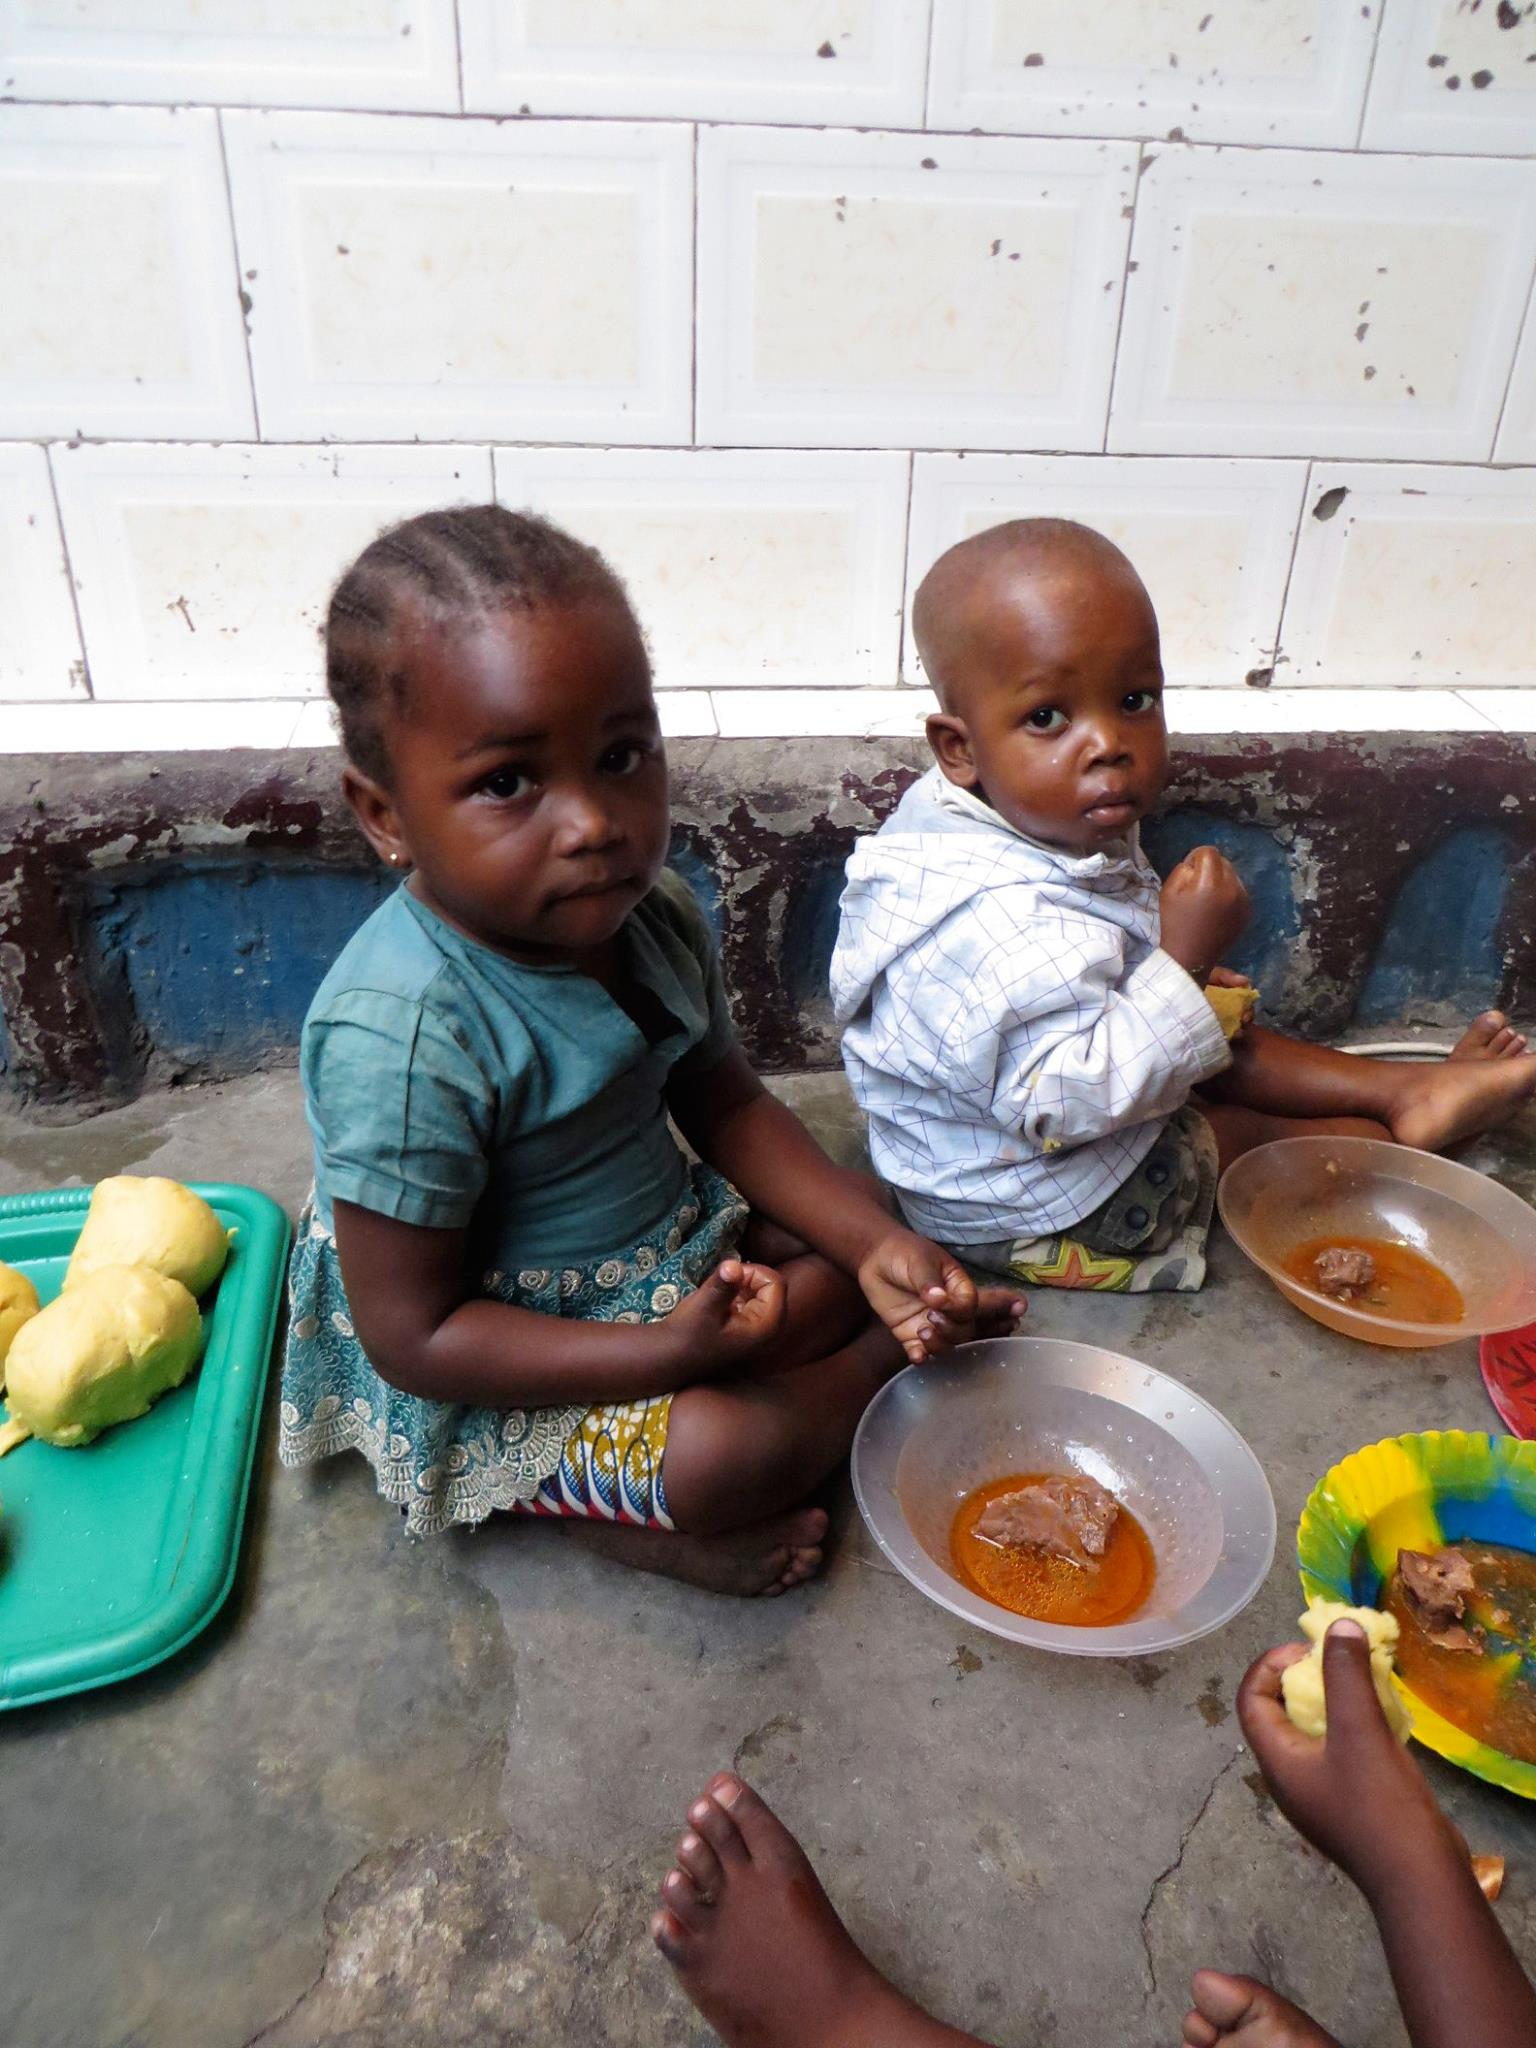 Children eating at the Amiband orphanage.